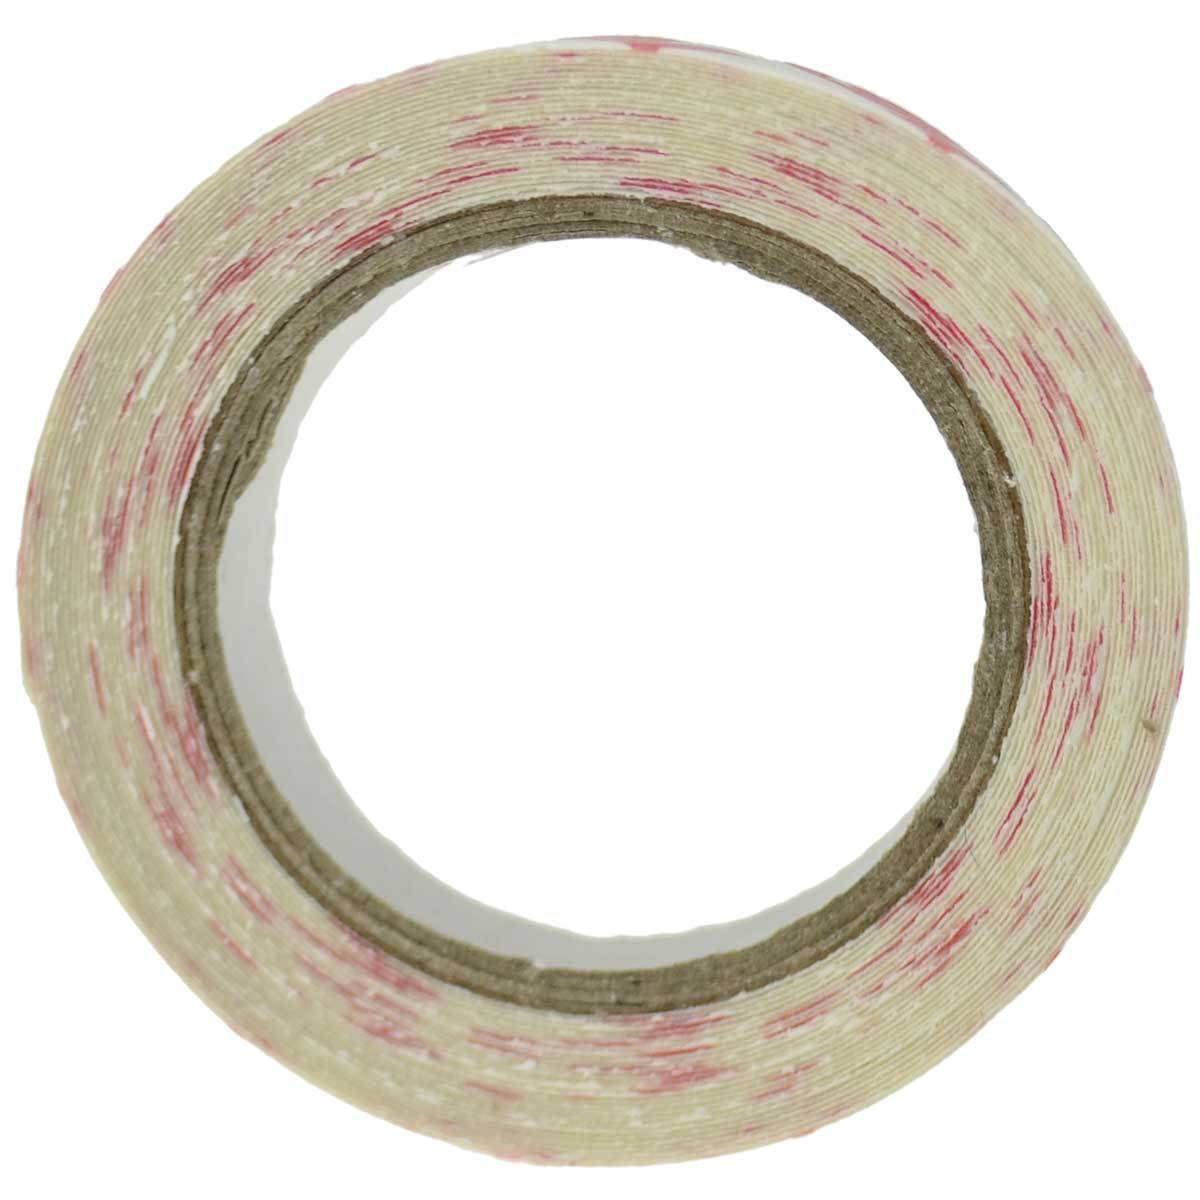 1 Roll Pink Standard L-Shaped Foam Edge Protector 78.7 inches (2 meters)